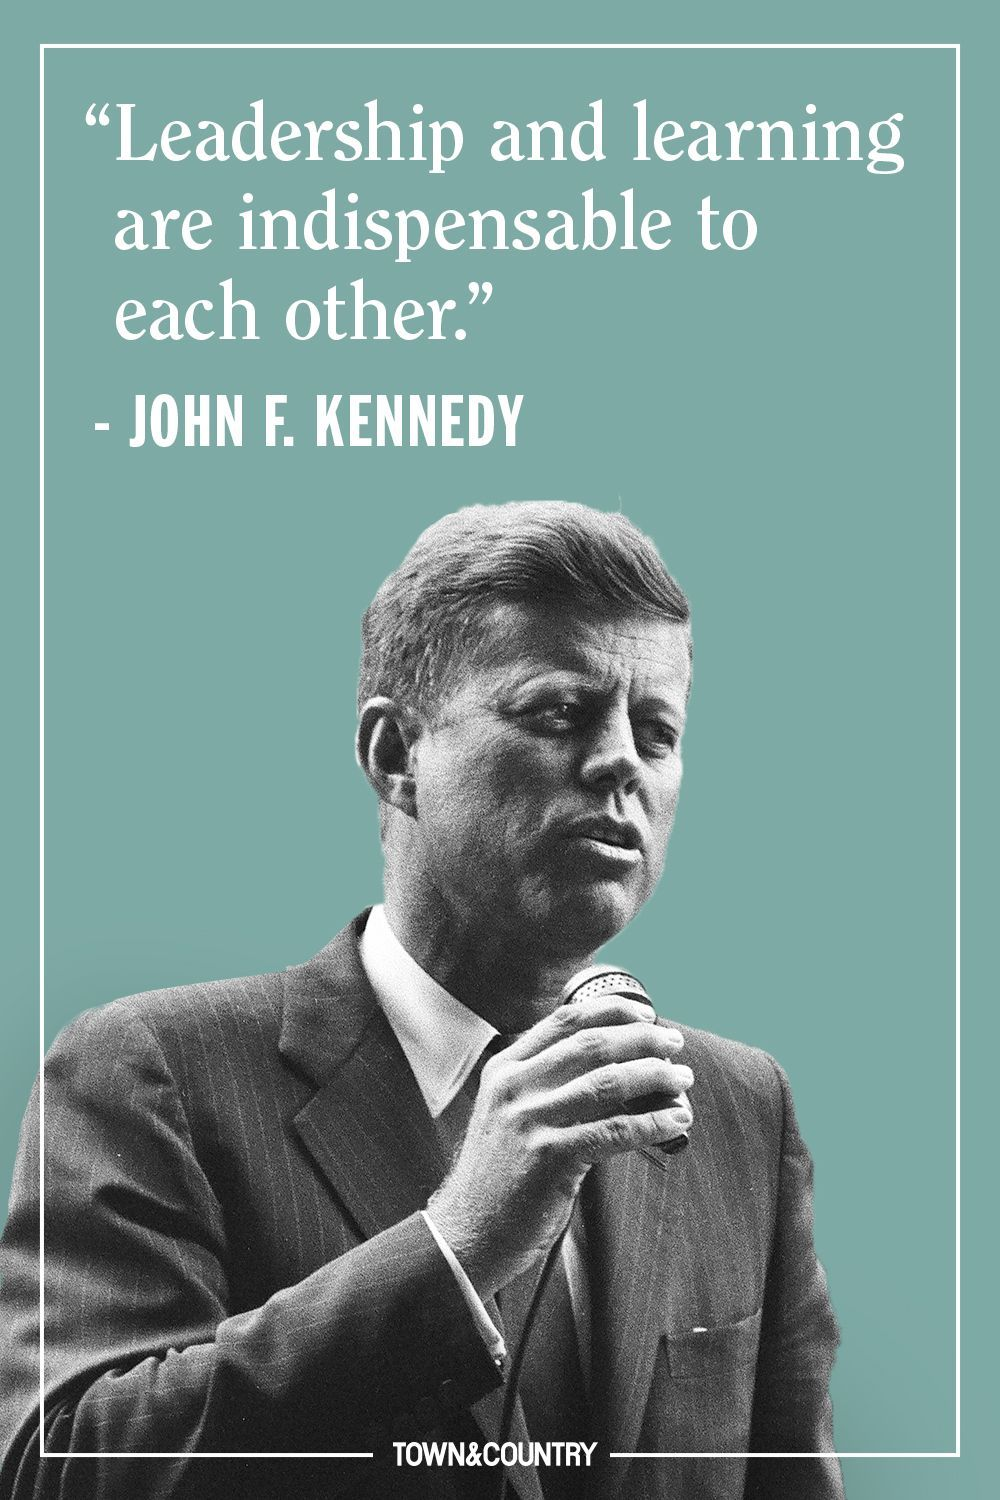 12 JFK Quotes That Prove His Wisdom is as Legendary as His